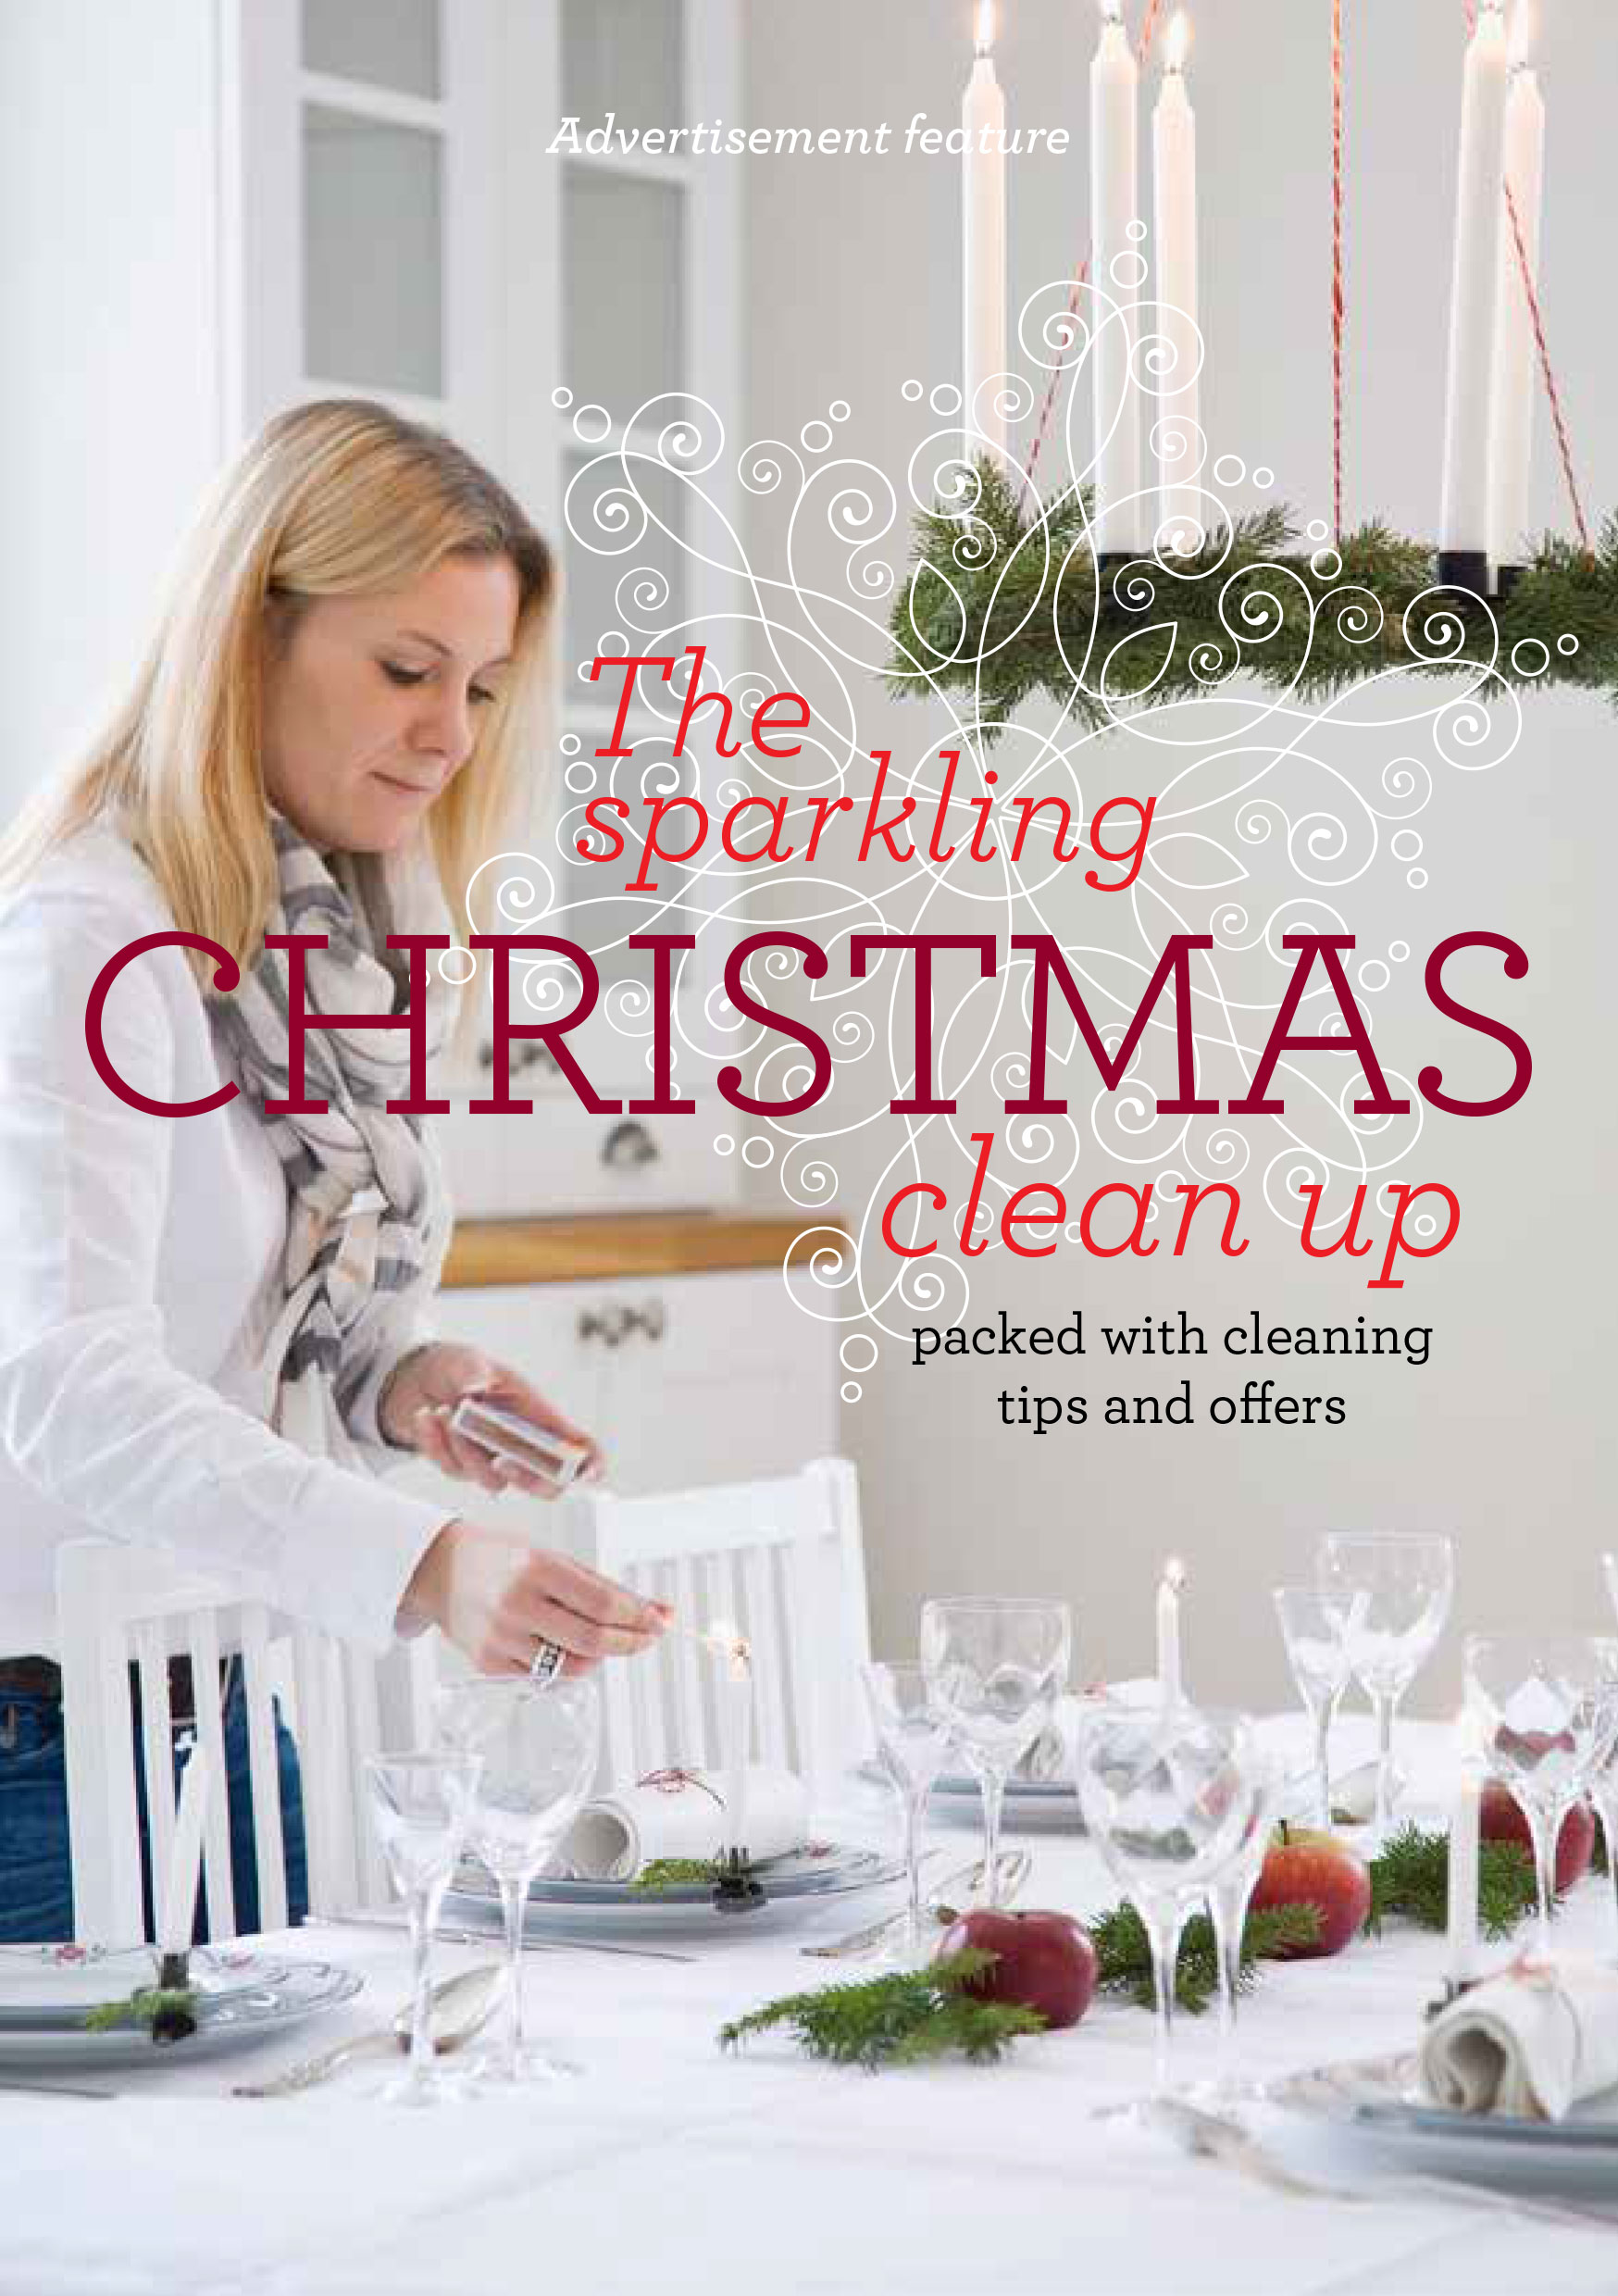 Christmas-cleaning-1